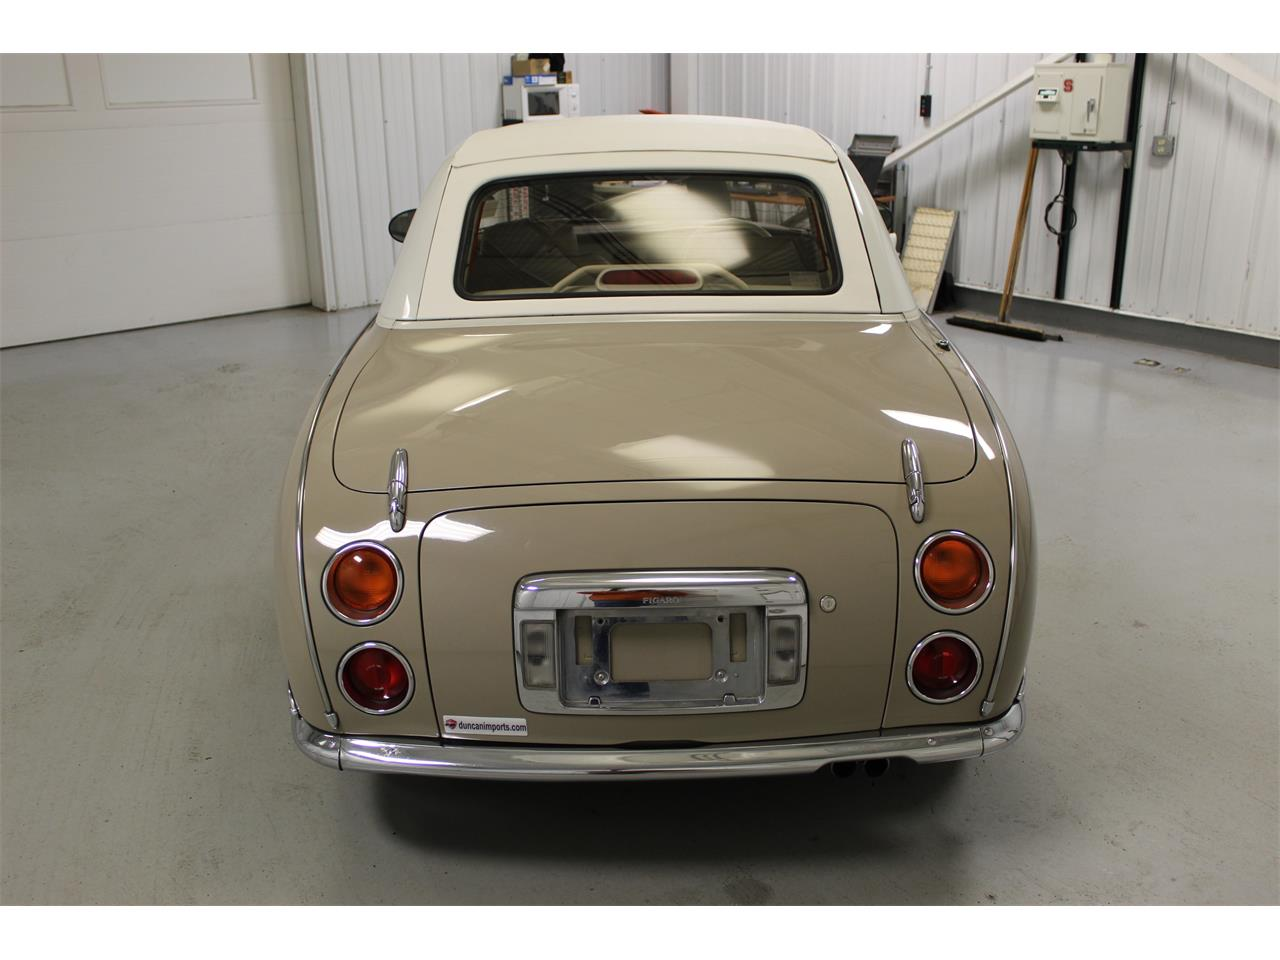 1991 Nissan Figaro for sale in Christiansburg, VA – photo 8